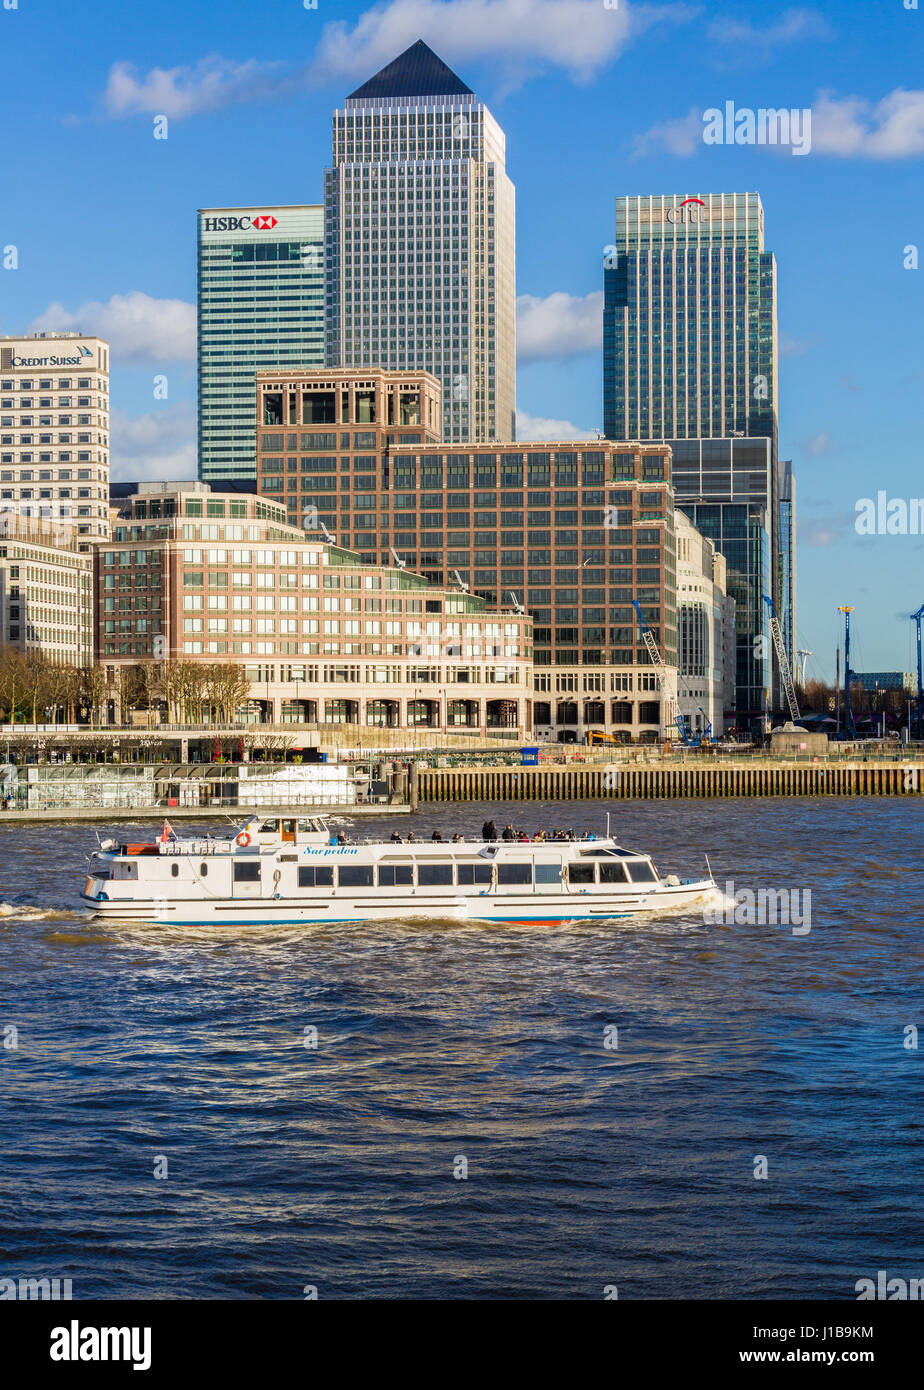 Thames River cruise boat and Canary Wharf, Docklands, London, UK - Stock Image